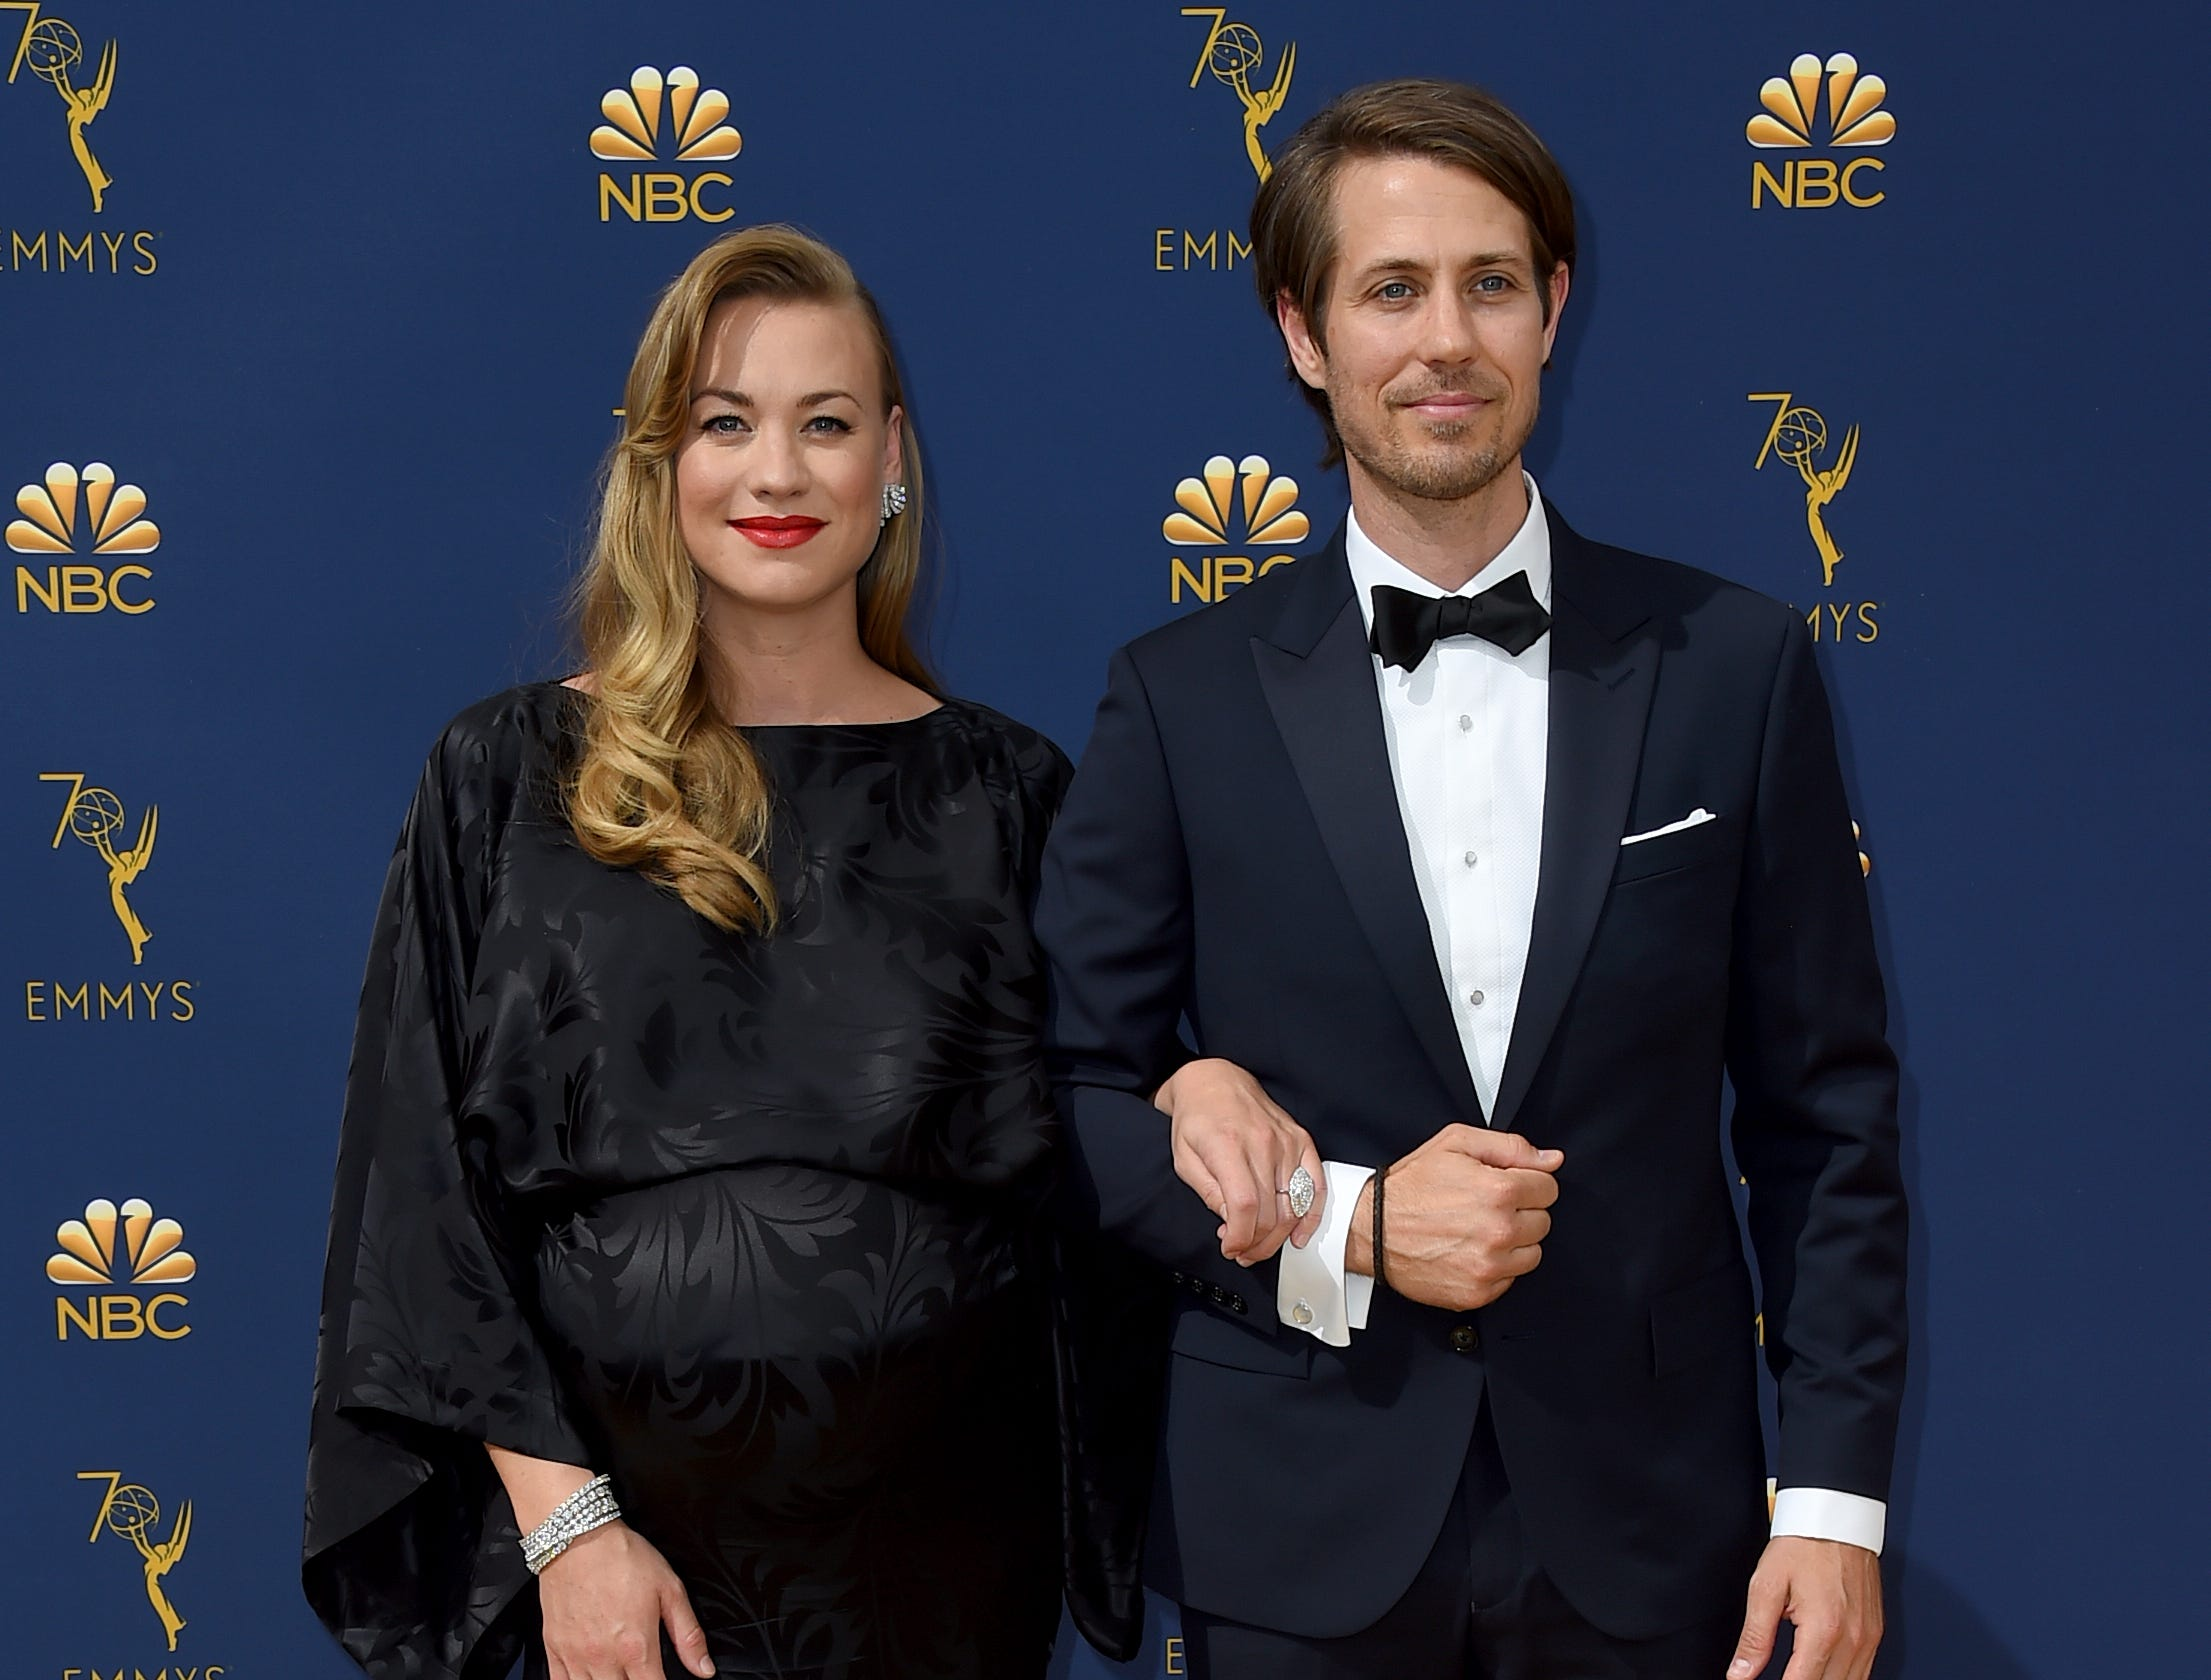 Yvonne Strahovski, left, and Tim Loden arrive at the 70th Primetime Emmy Awards on Monday, Sept. 17, 2018, at the Microsoft Theater in Los Angeles.